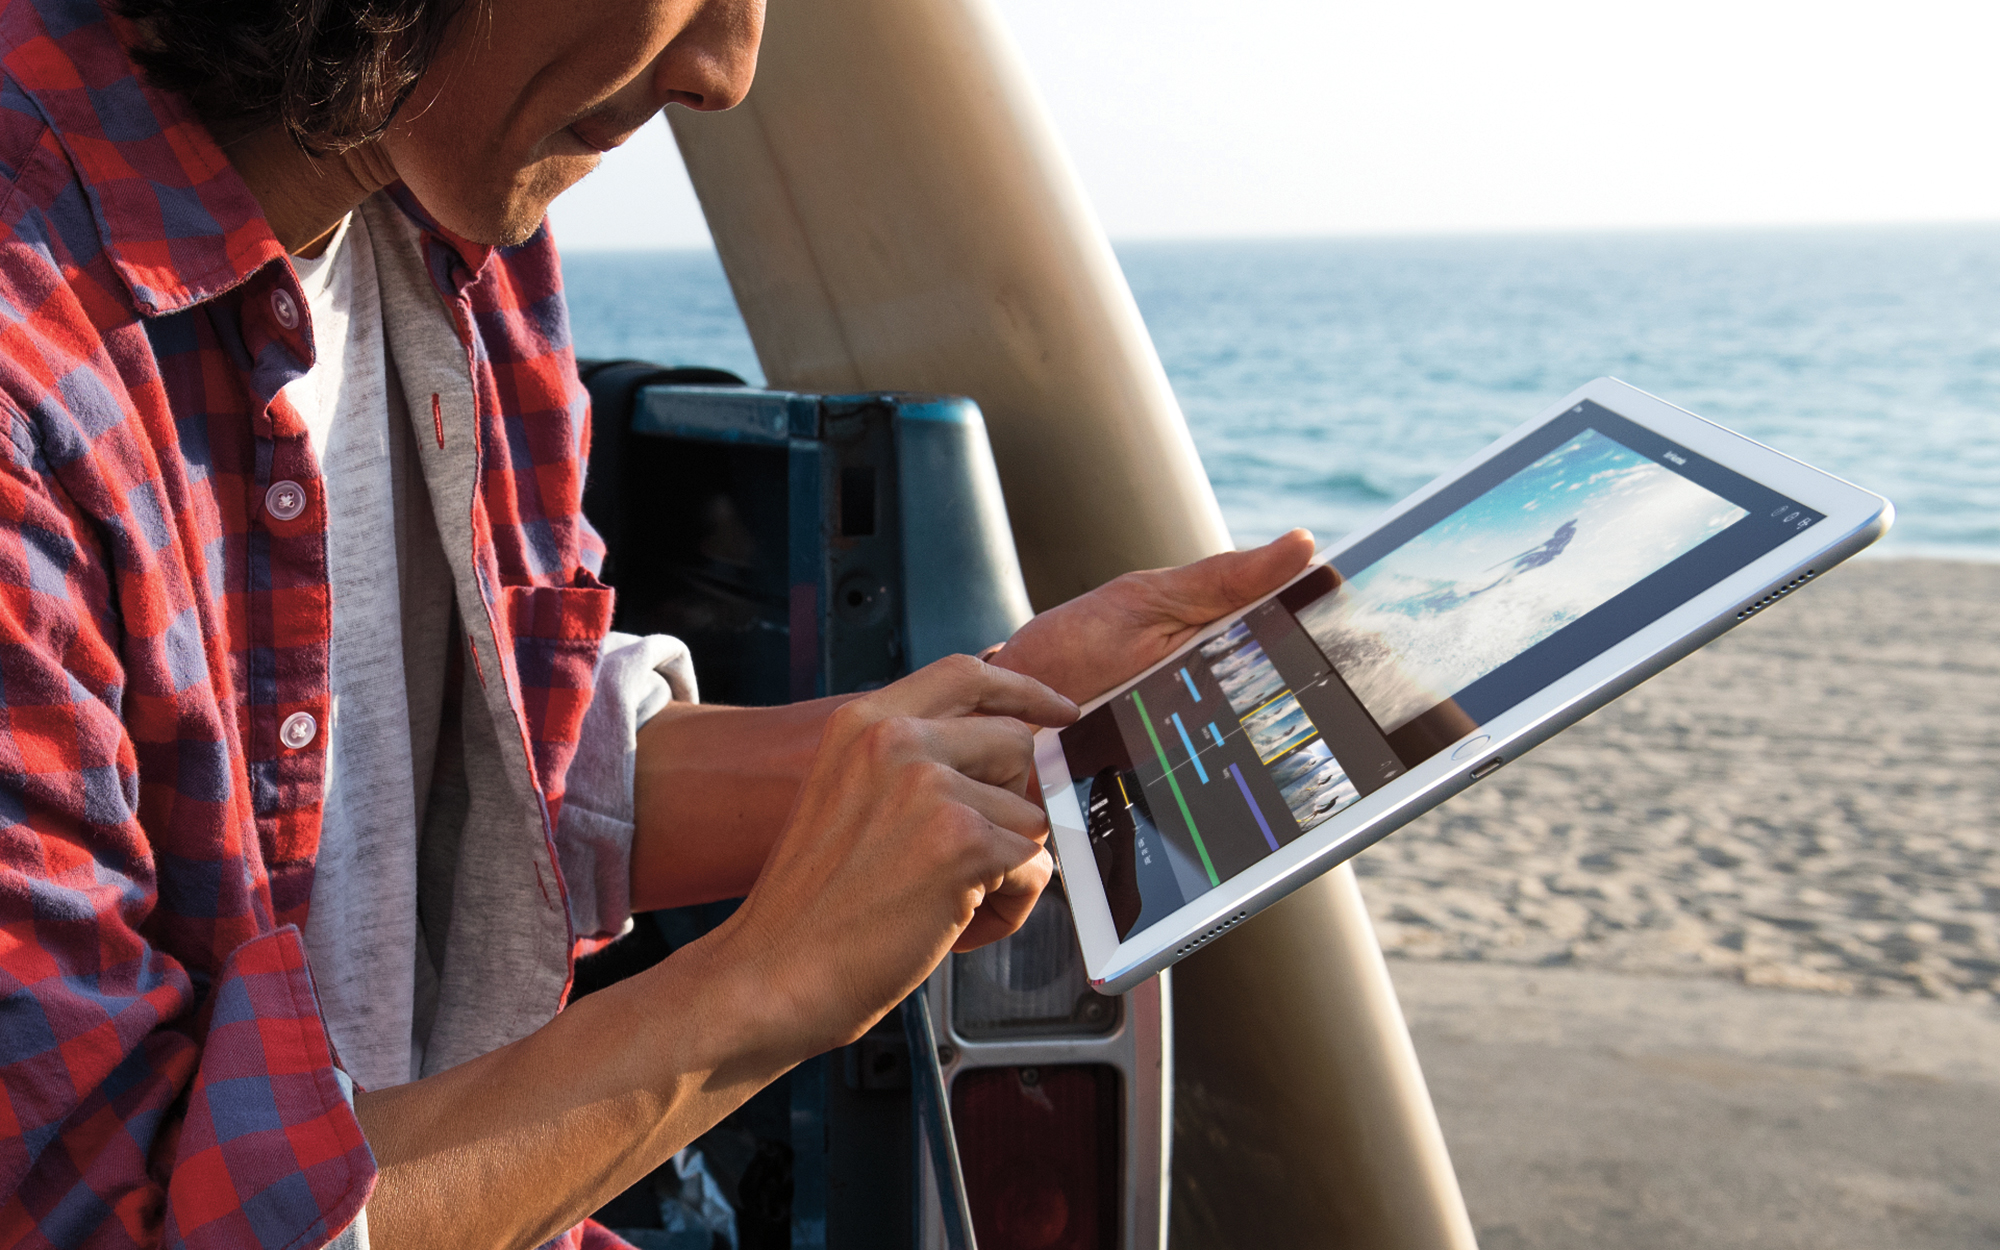 Apple's New iPad Pro is a Travel Must-Have